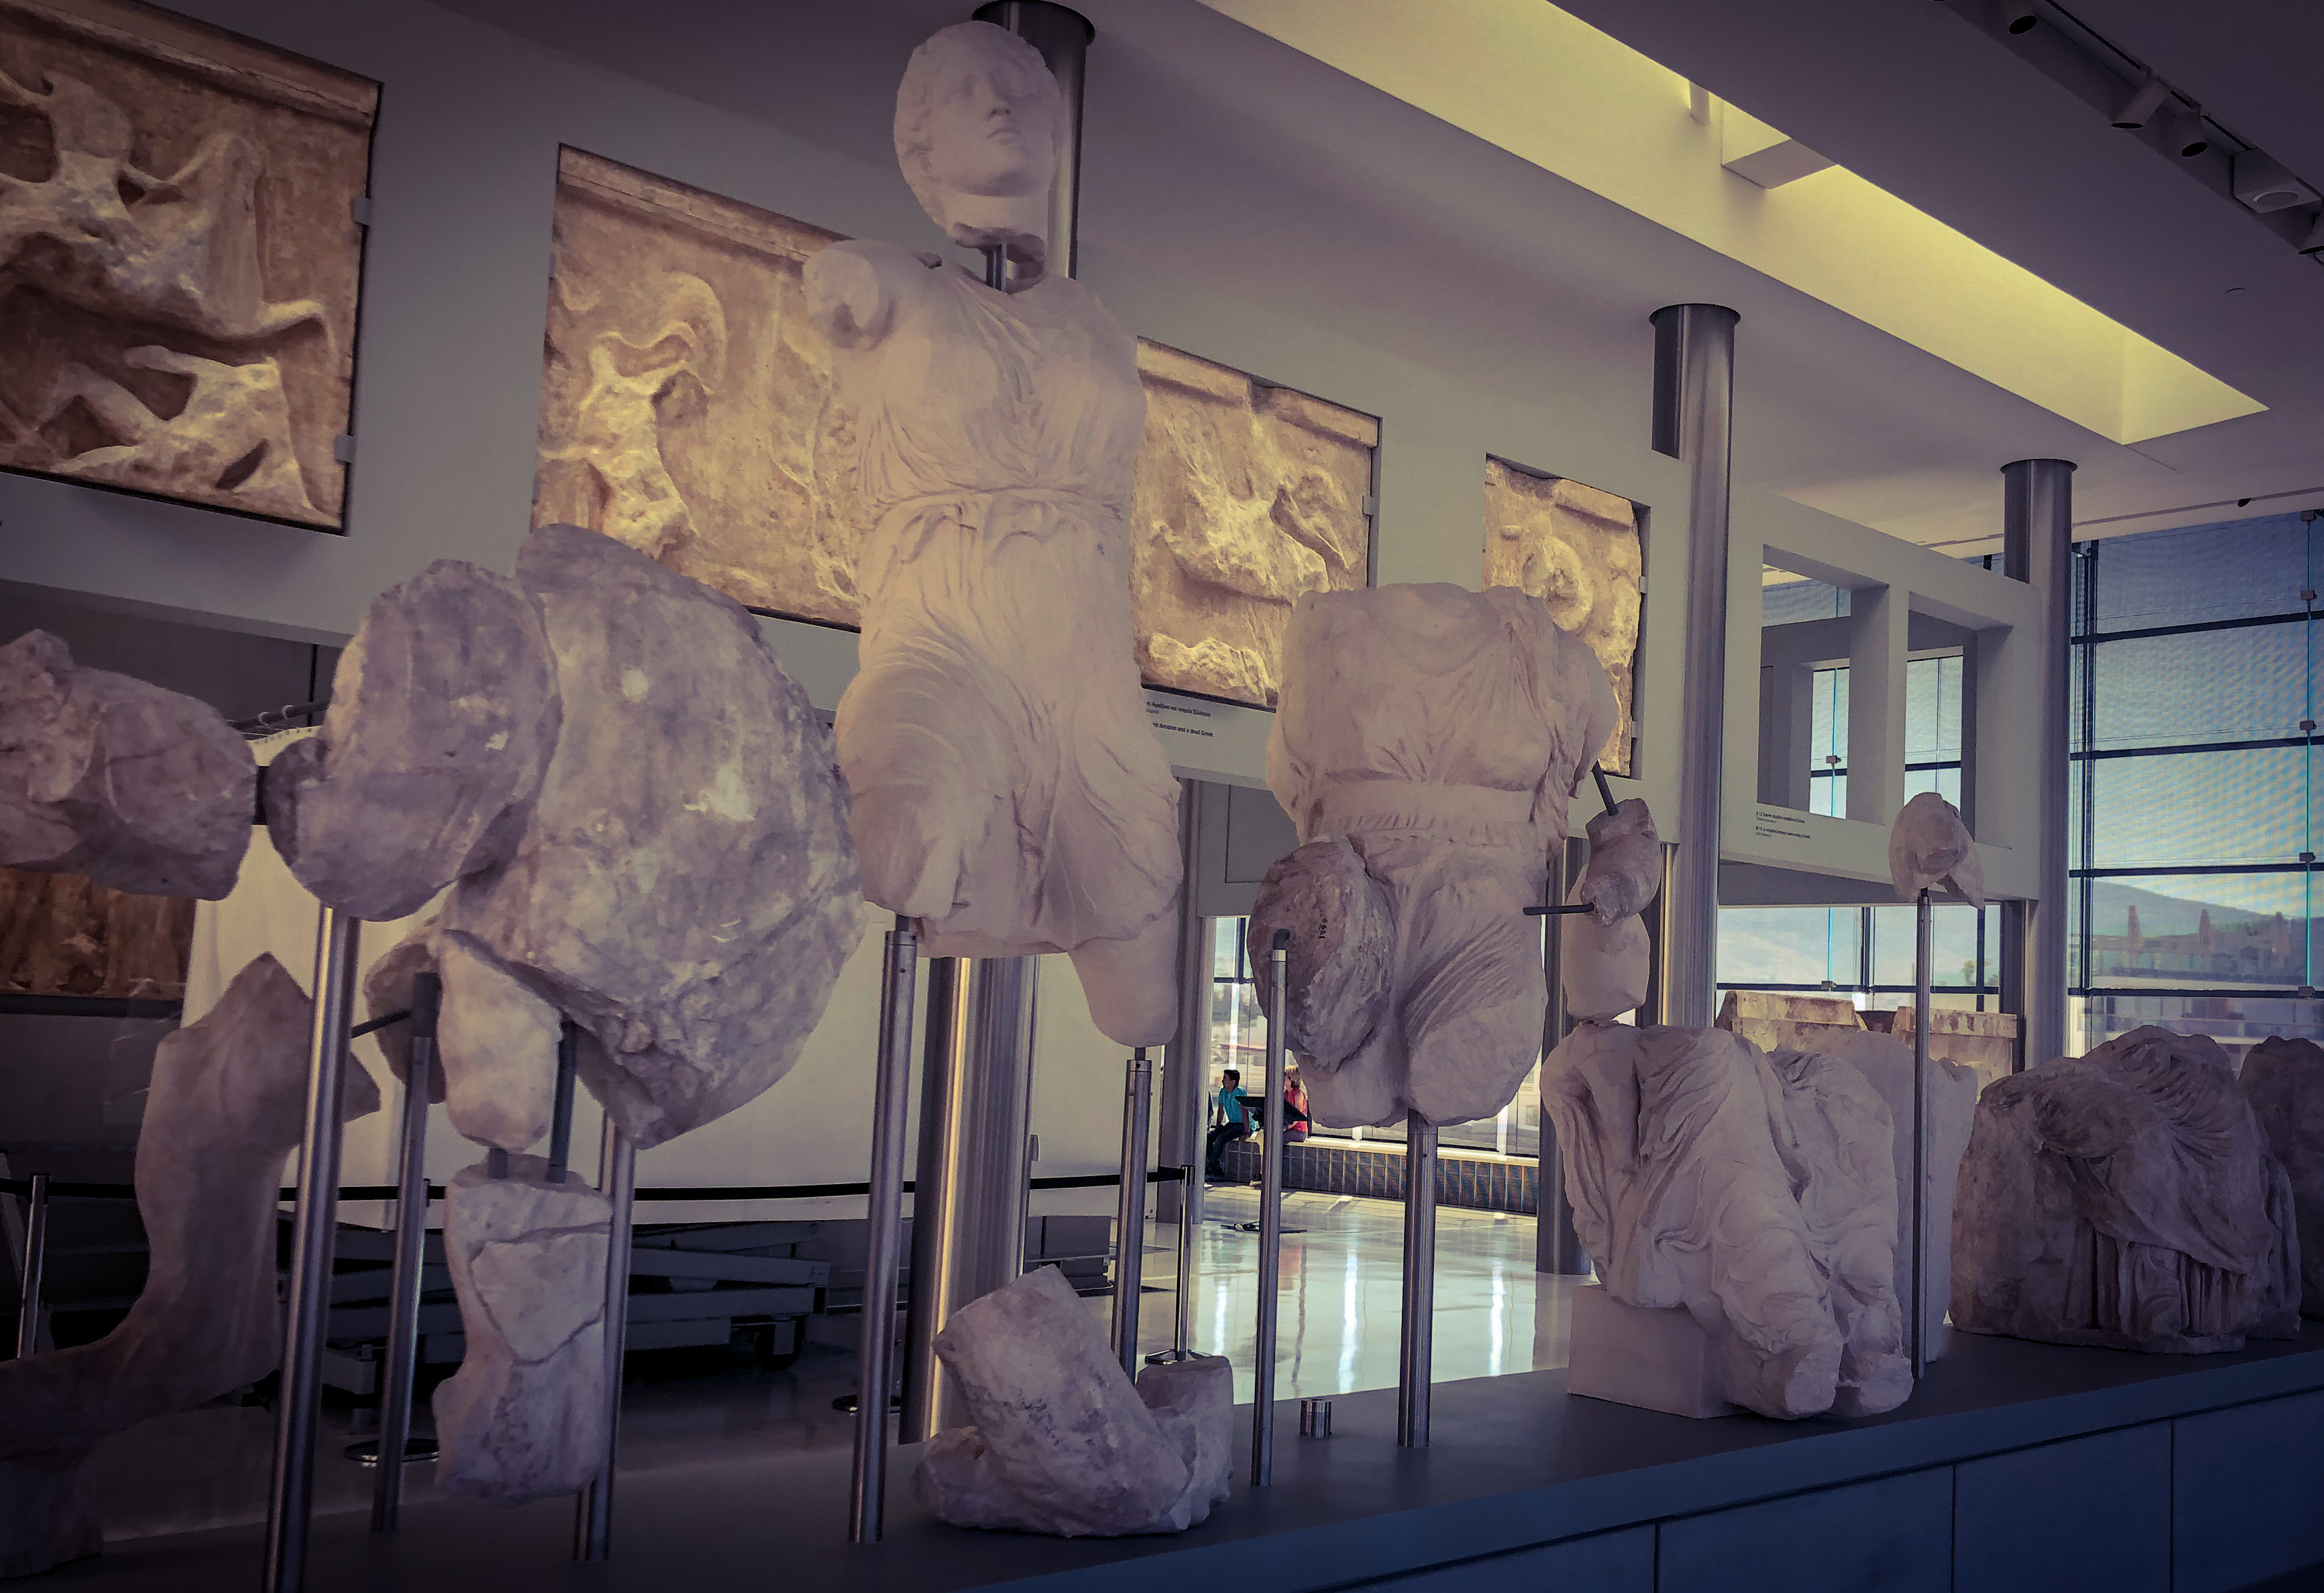 Artifacts from the Parthenon on display at the Acropolis Museum with the Parthenon seen through the window at a distance.